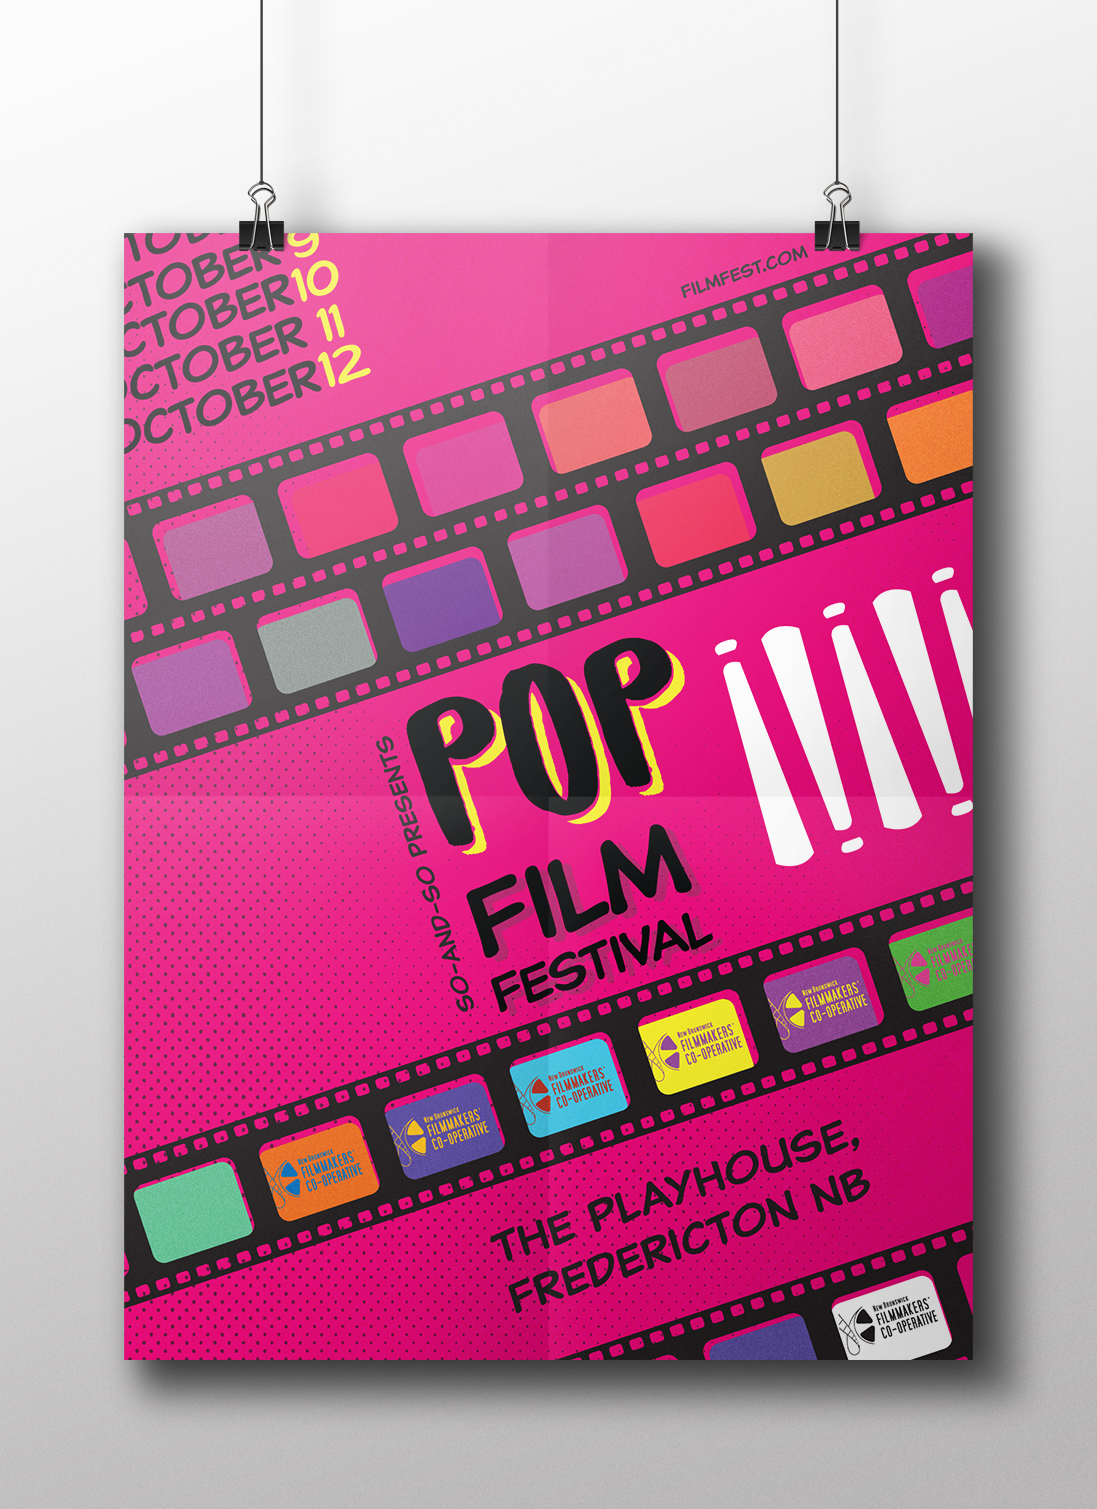 film festival poster - POP! Film Festival | Given and event and an art style we were tasked with creating a poster and two variations for the event. This is a combination film festival and Pop Art.